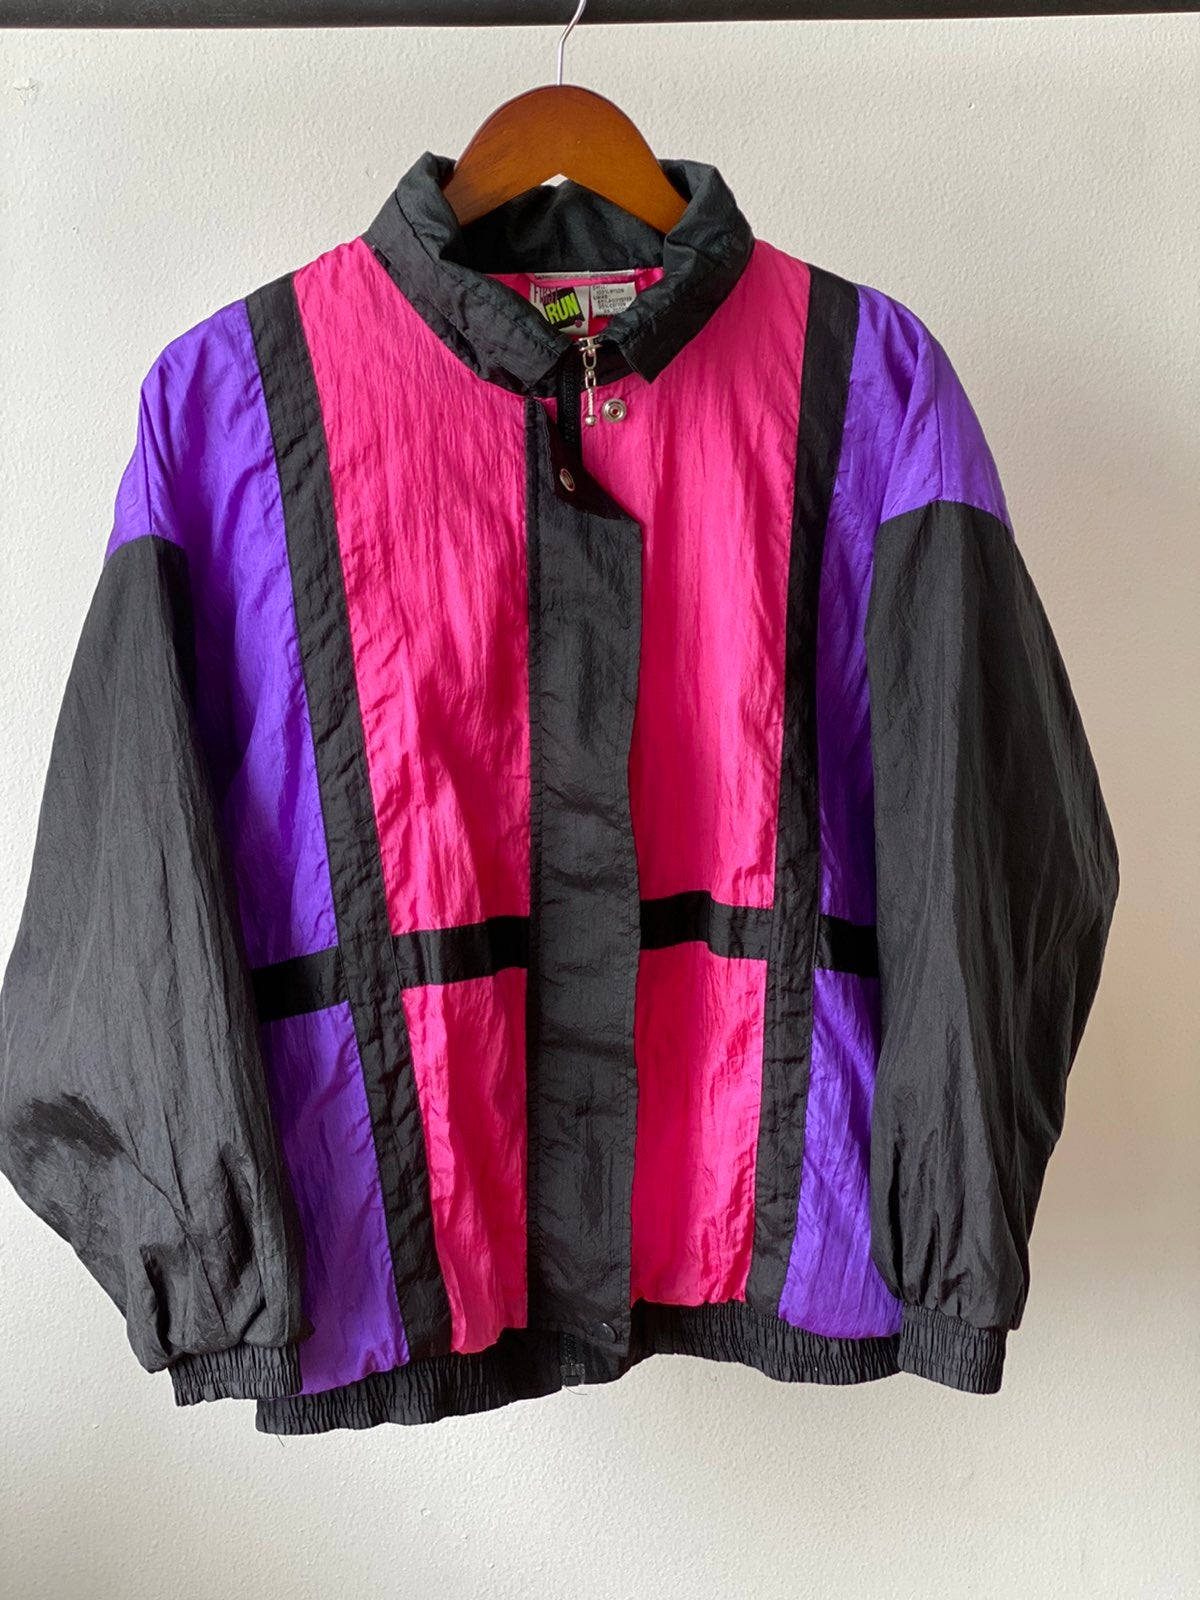 Vintage 80s First Run Color Block Jacket